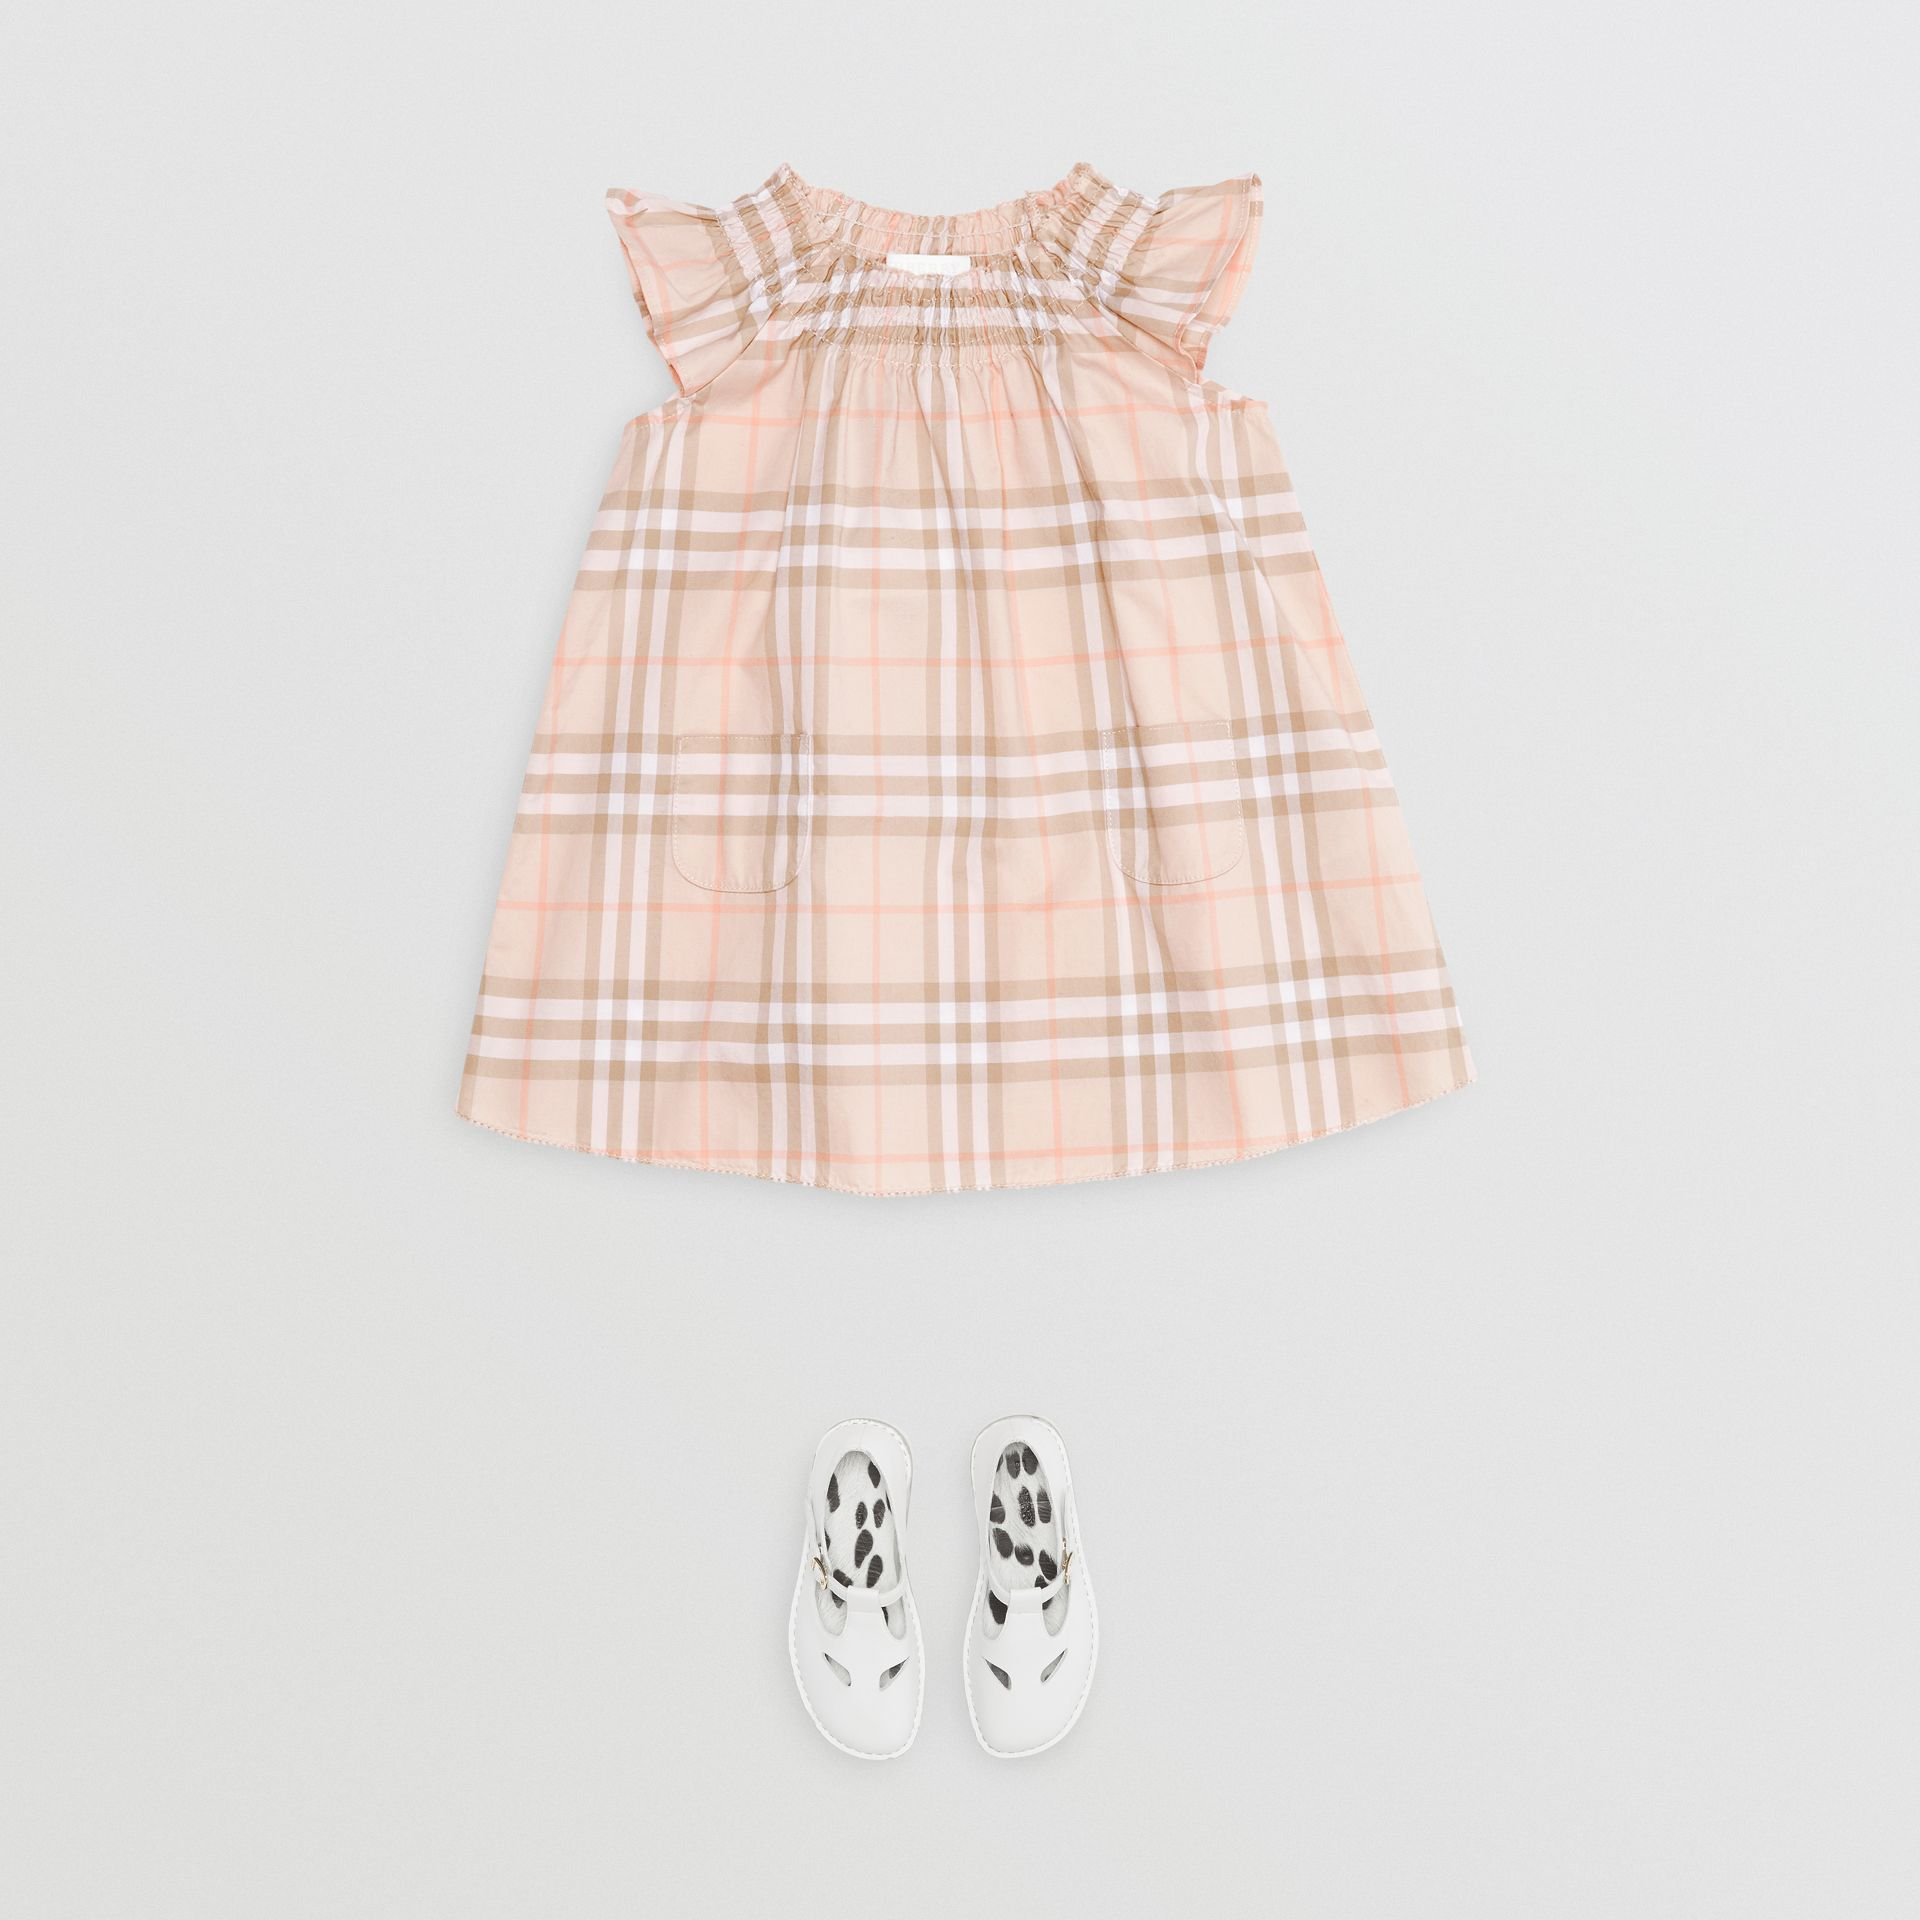 Smocked Vintage Check Cotton Dress in Pale Pink Apricot - Children | Burberry - gallery image 2